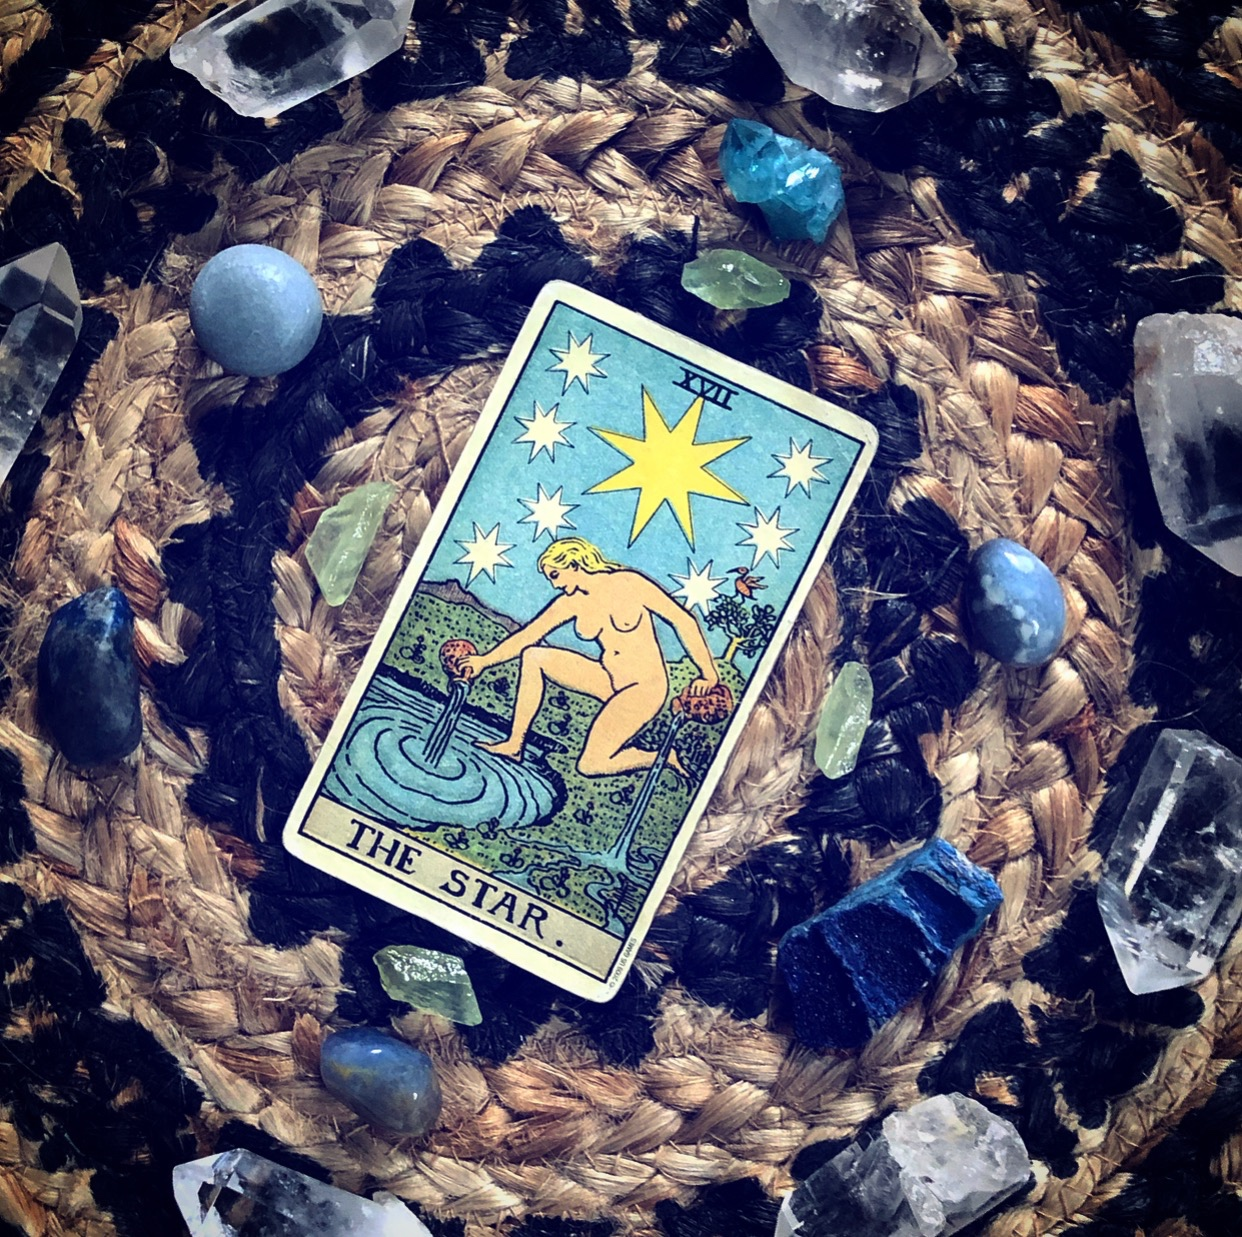 For Tarot Tuesday we examine the Star Card - a favorite for many!